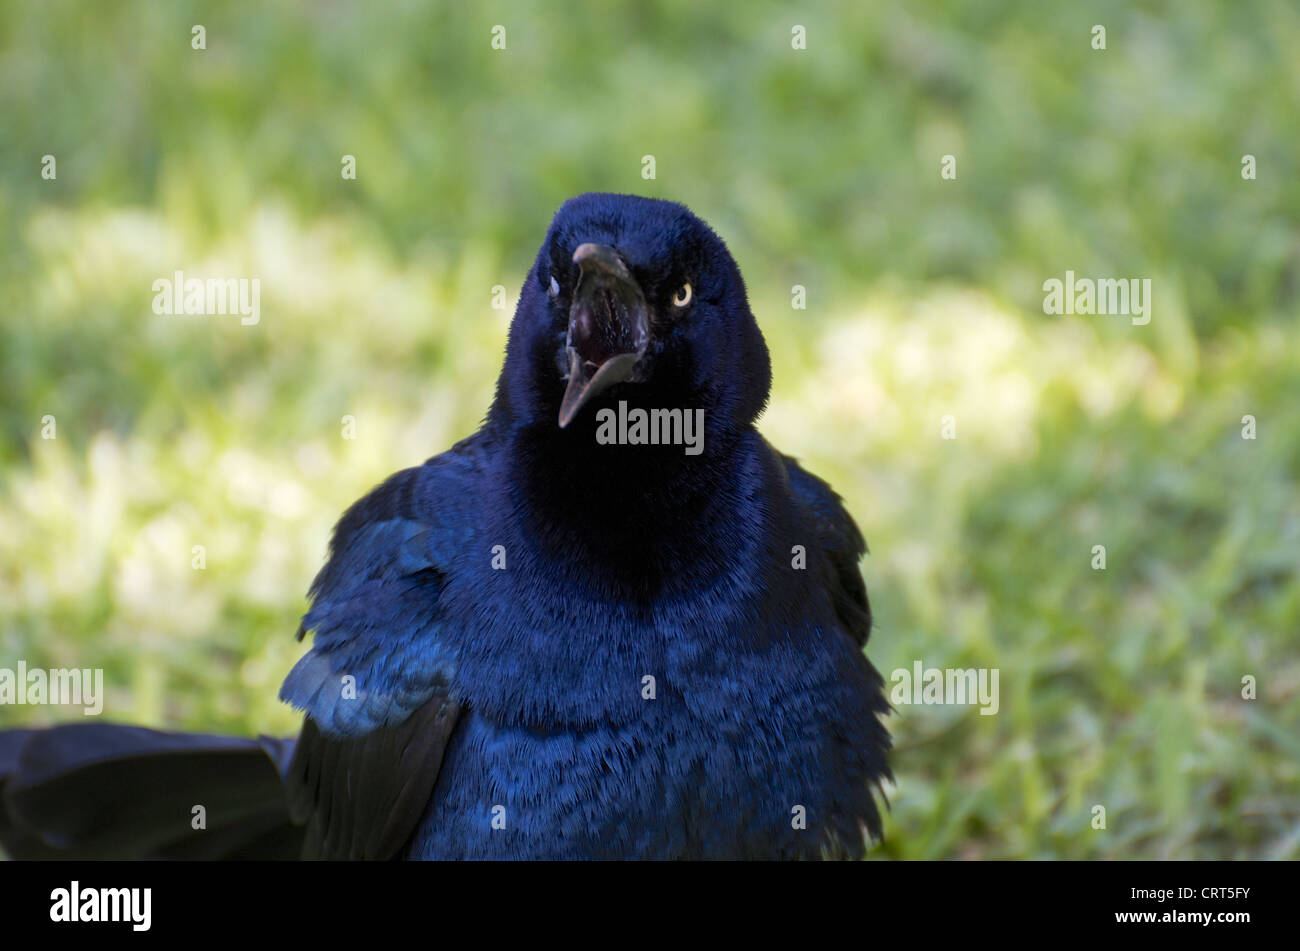 A great-tailed grackle squawking loudly with his beak wide open and feathers puffed. - Stock Image